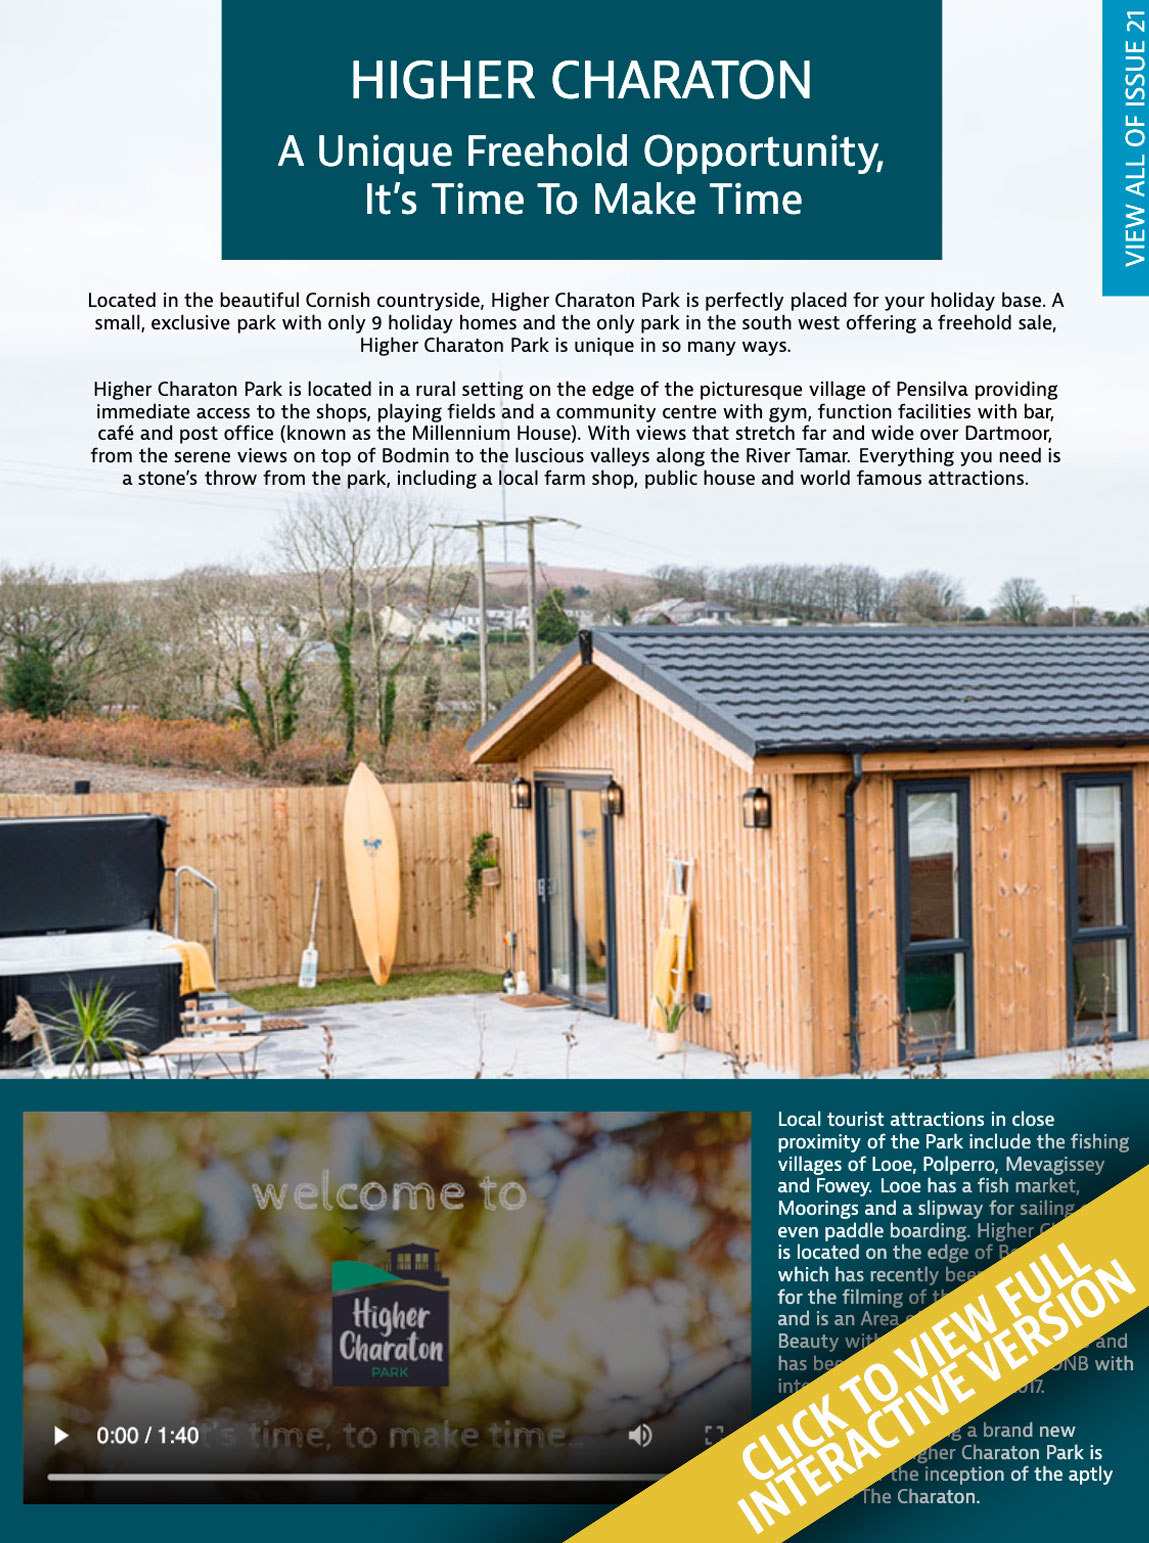 Higher Charaton Holiday Home Living Issue 21